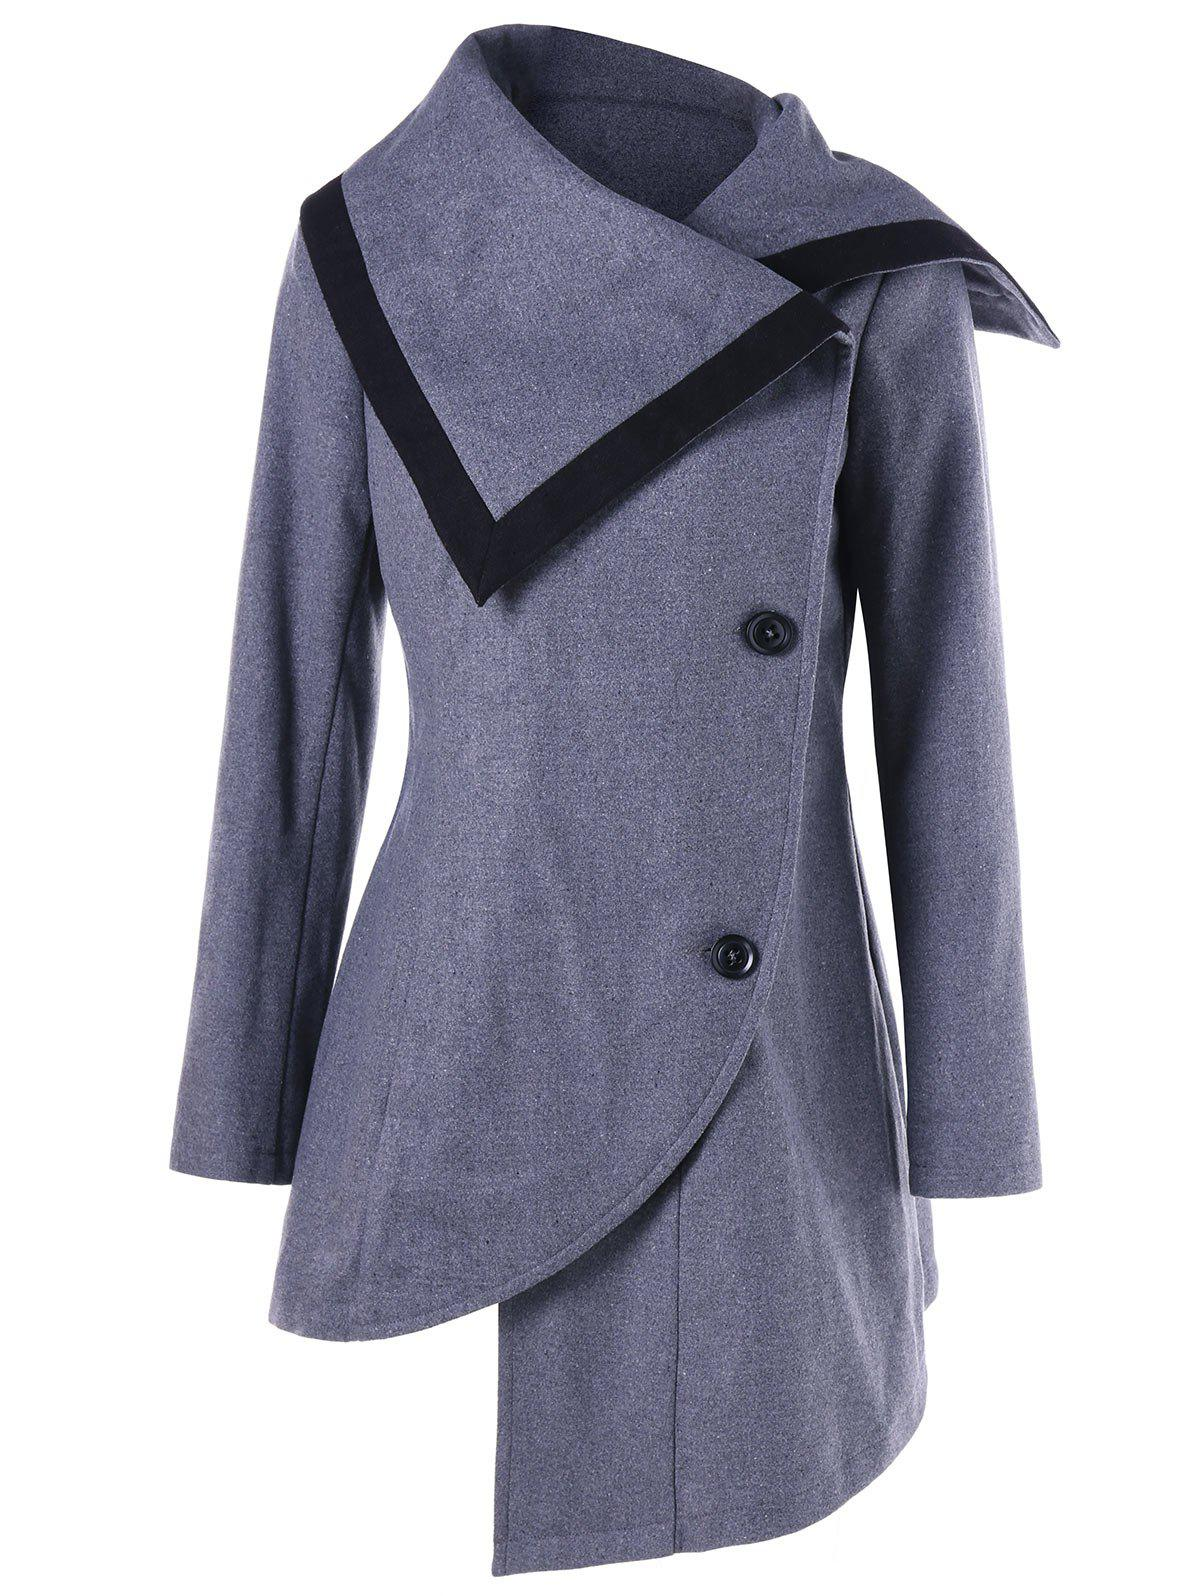 Oblique Button High Low Tunic Wool CoatWOMEN<br><br>Size: M; Color: GRAY; Clothes Type: Wool &amp; Blends; Material: Polyester,Wool; Type: Asymmetric Length; Shirt Length: Long; Sleeve Length: Full; Collar: Turn-down Collar; Pattern Type: Solid; Style: Fashion; Season: Fall,Spring,Winter; Weight: 0.7800kg; Package Contents: 1 x Coat;